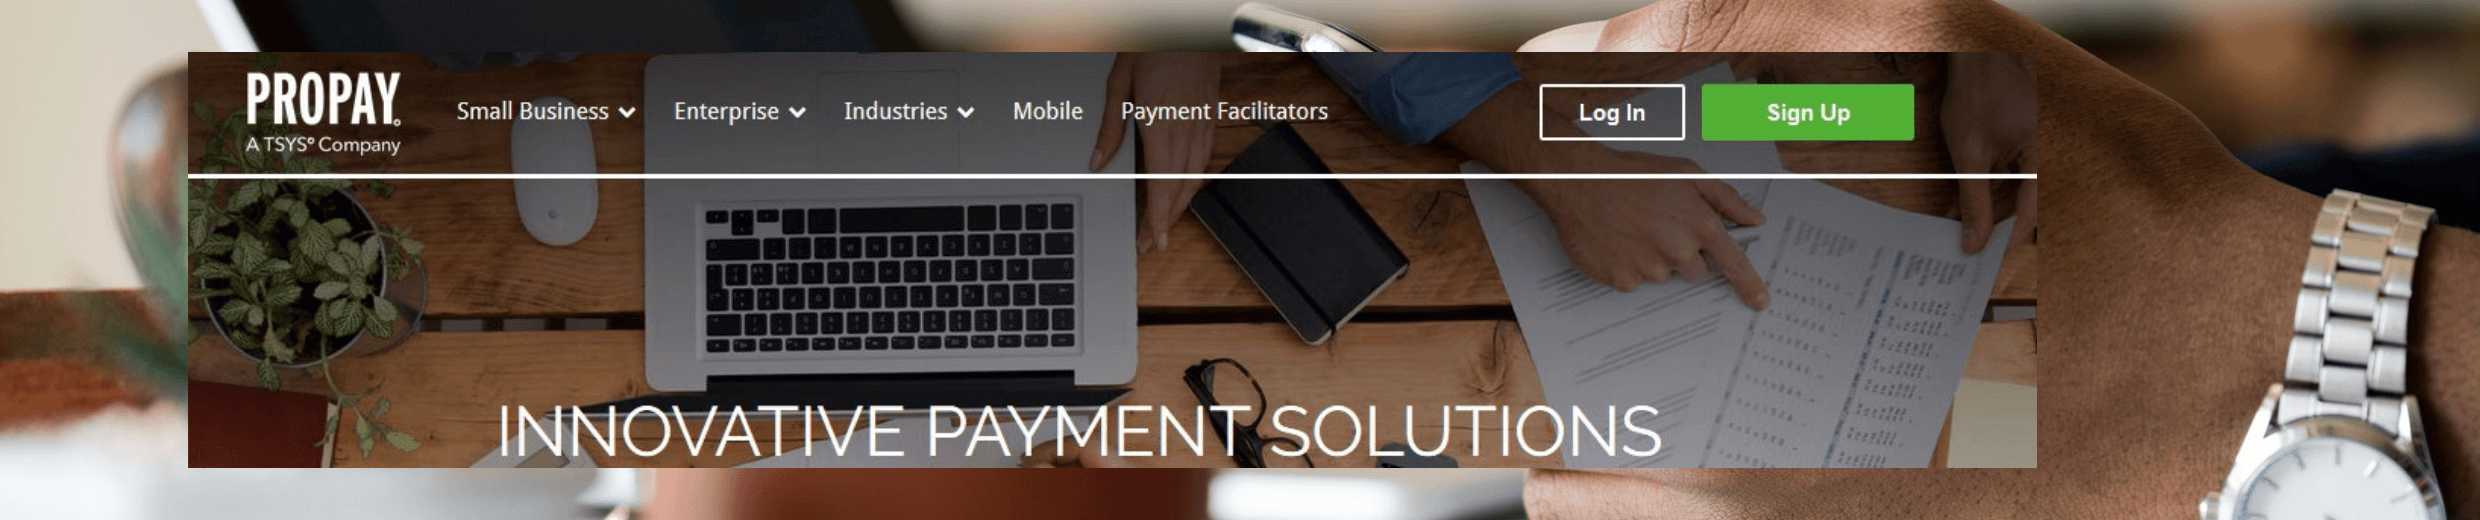 Propay payment gateway